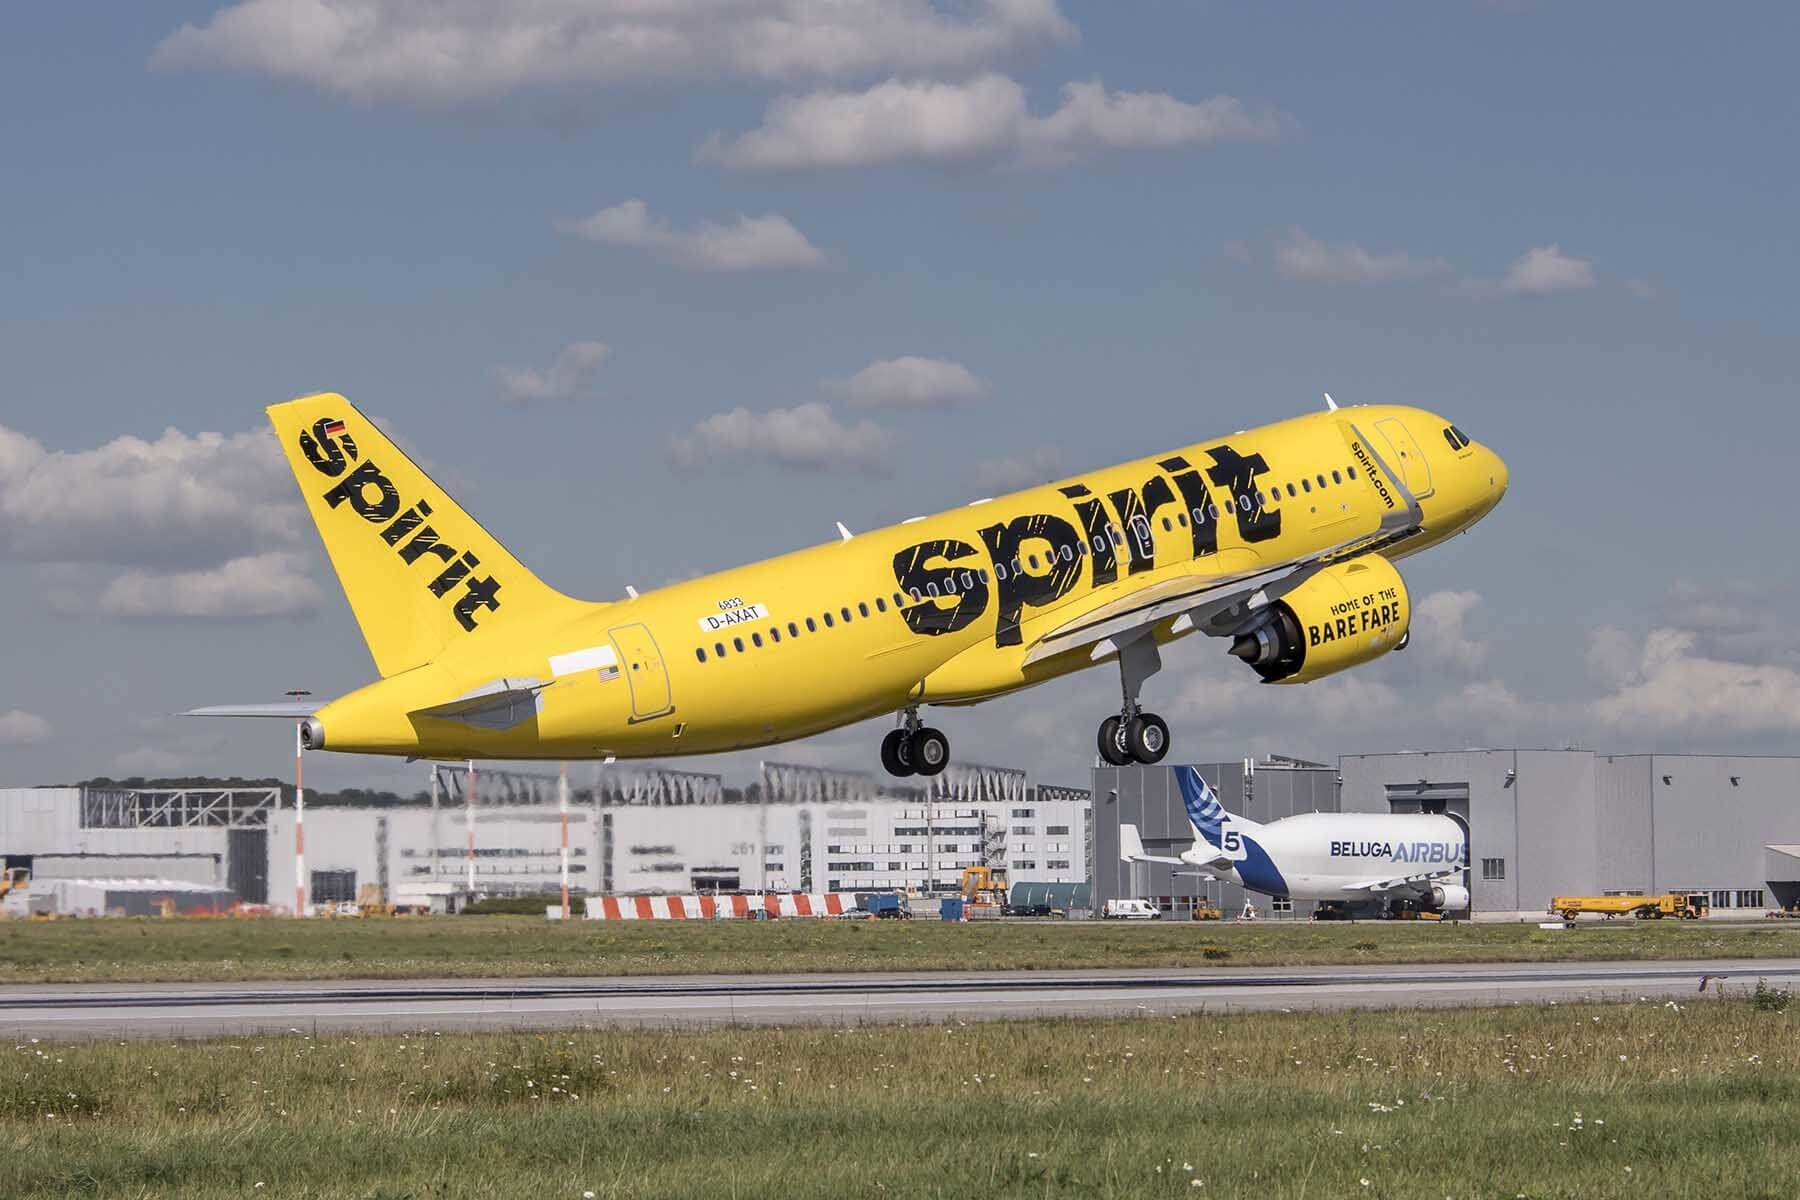 100 A320neo aircraft: Spirit Airlines places huge order with Airbus